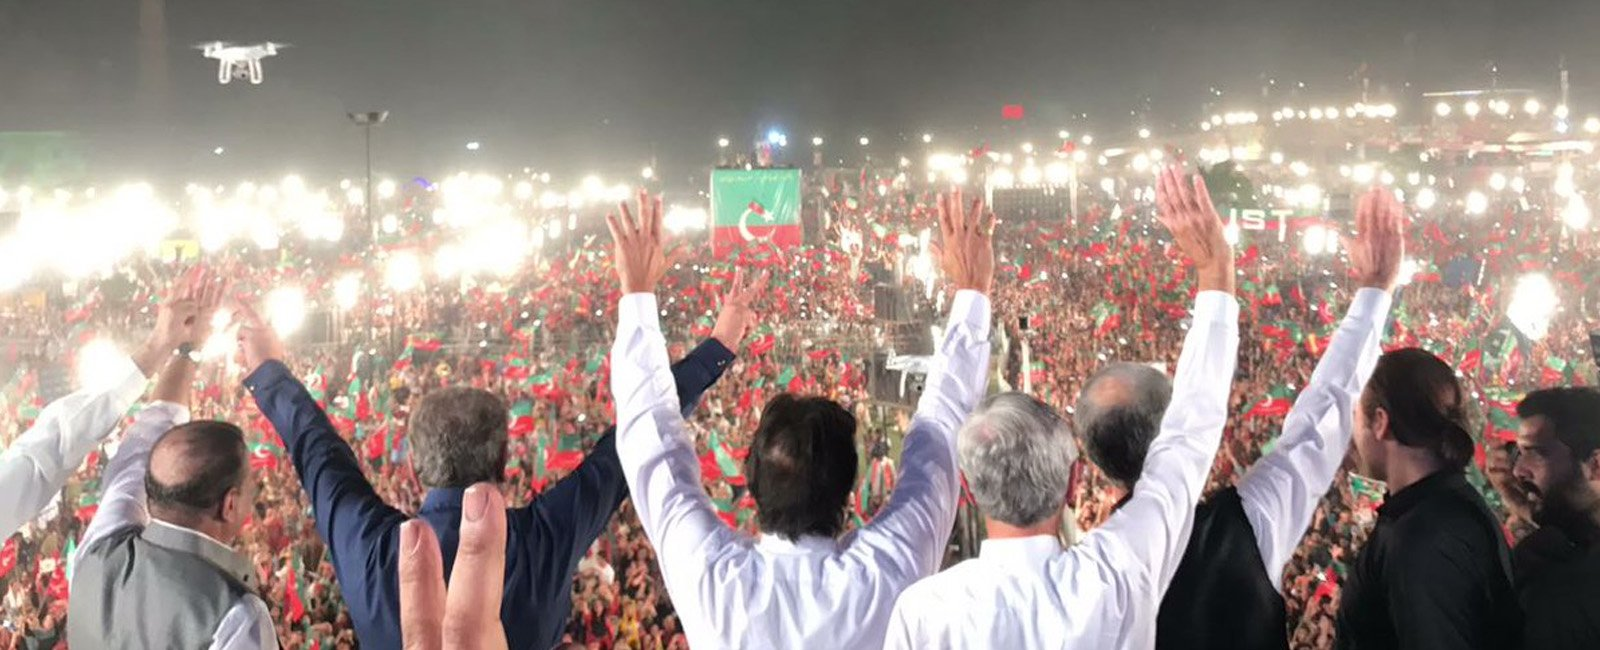 Imran Khan unveils 11-point reforms programme for 'Naya Pakistan' at Lahore rally